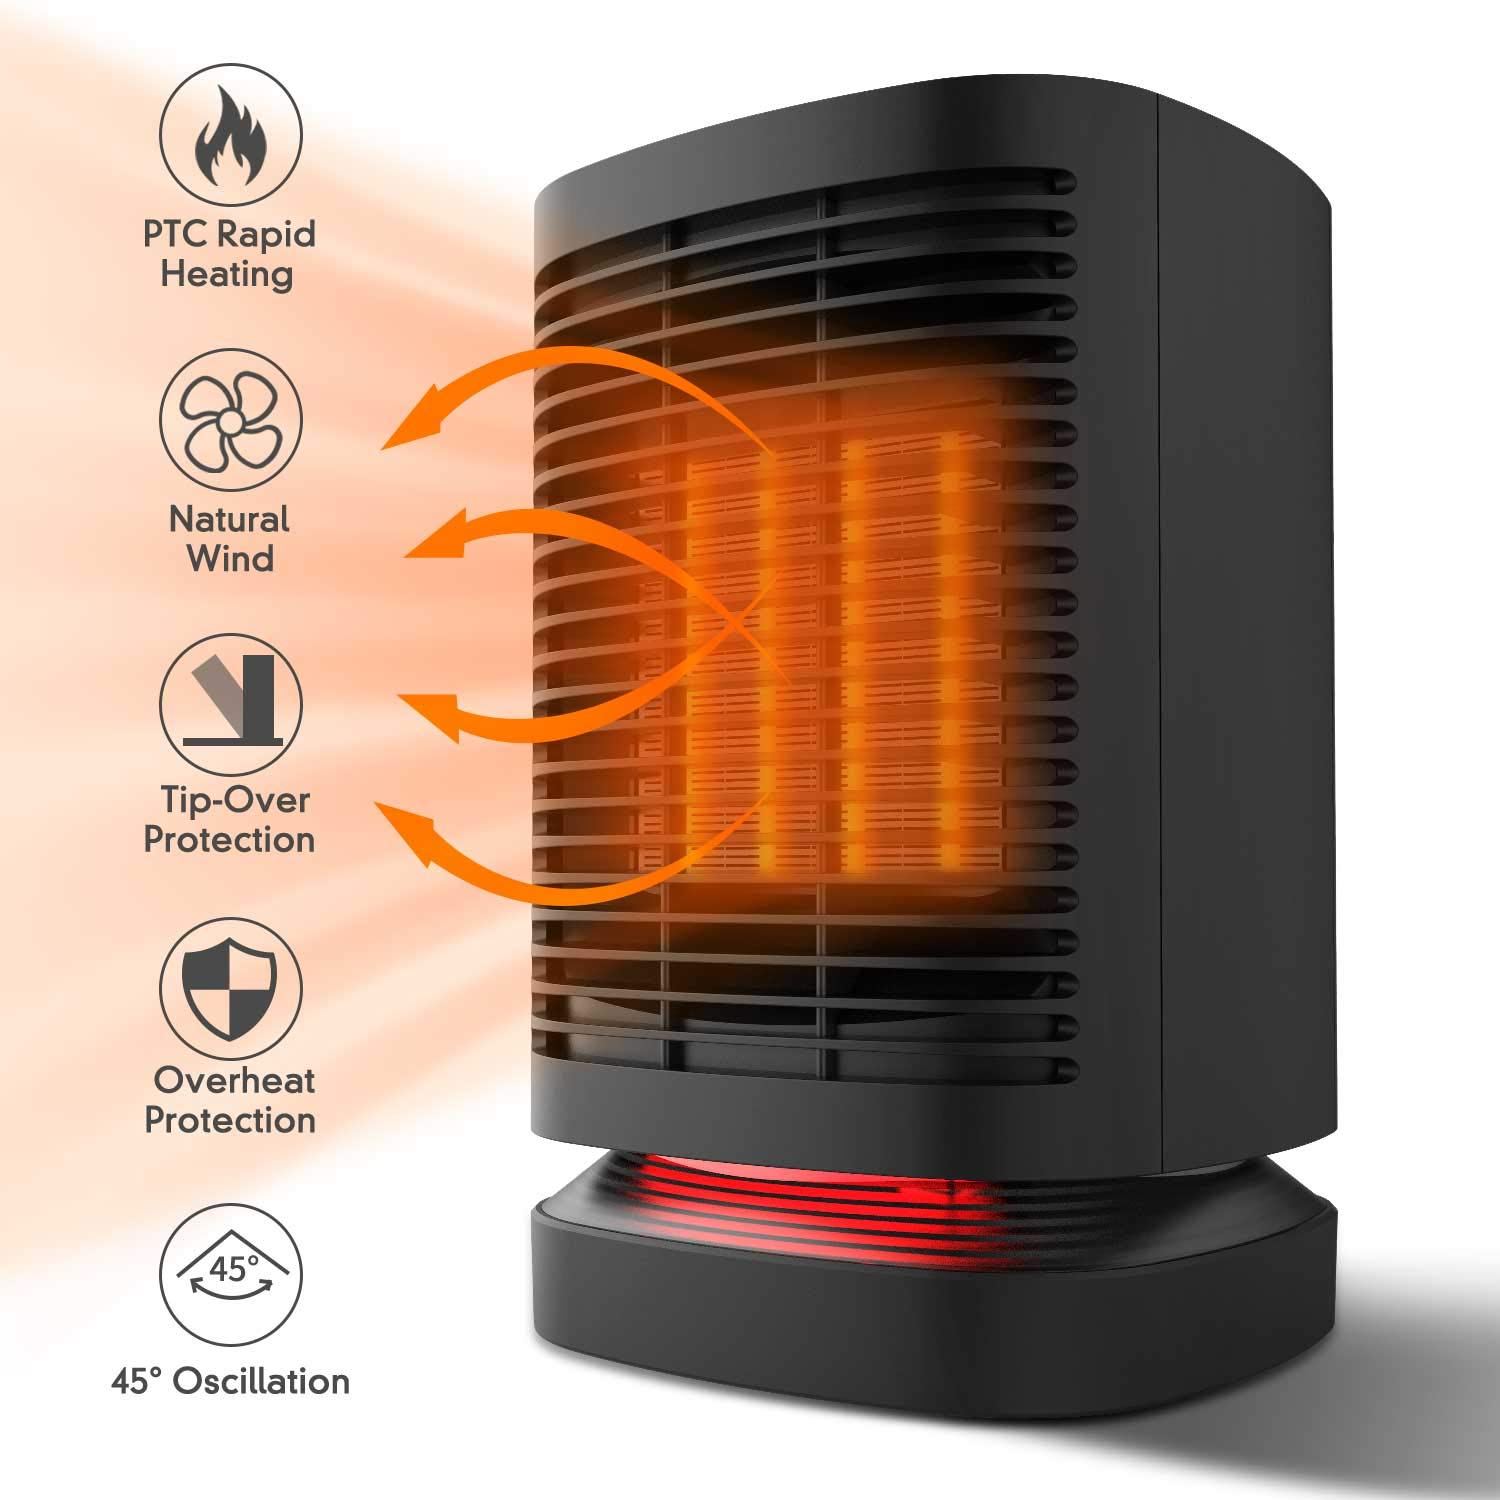 Portable Space Heater, 950W Electric Mini Air Heater, PTC Ceramic Personal Fan Heater with Over-heat and Tip-over Protection for Home and Office